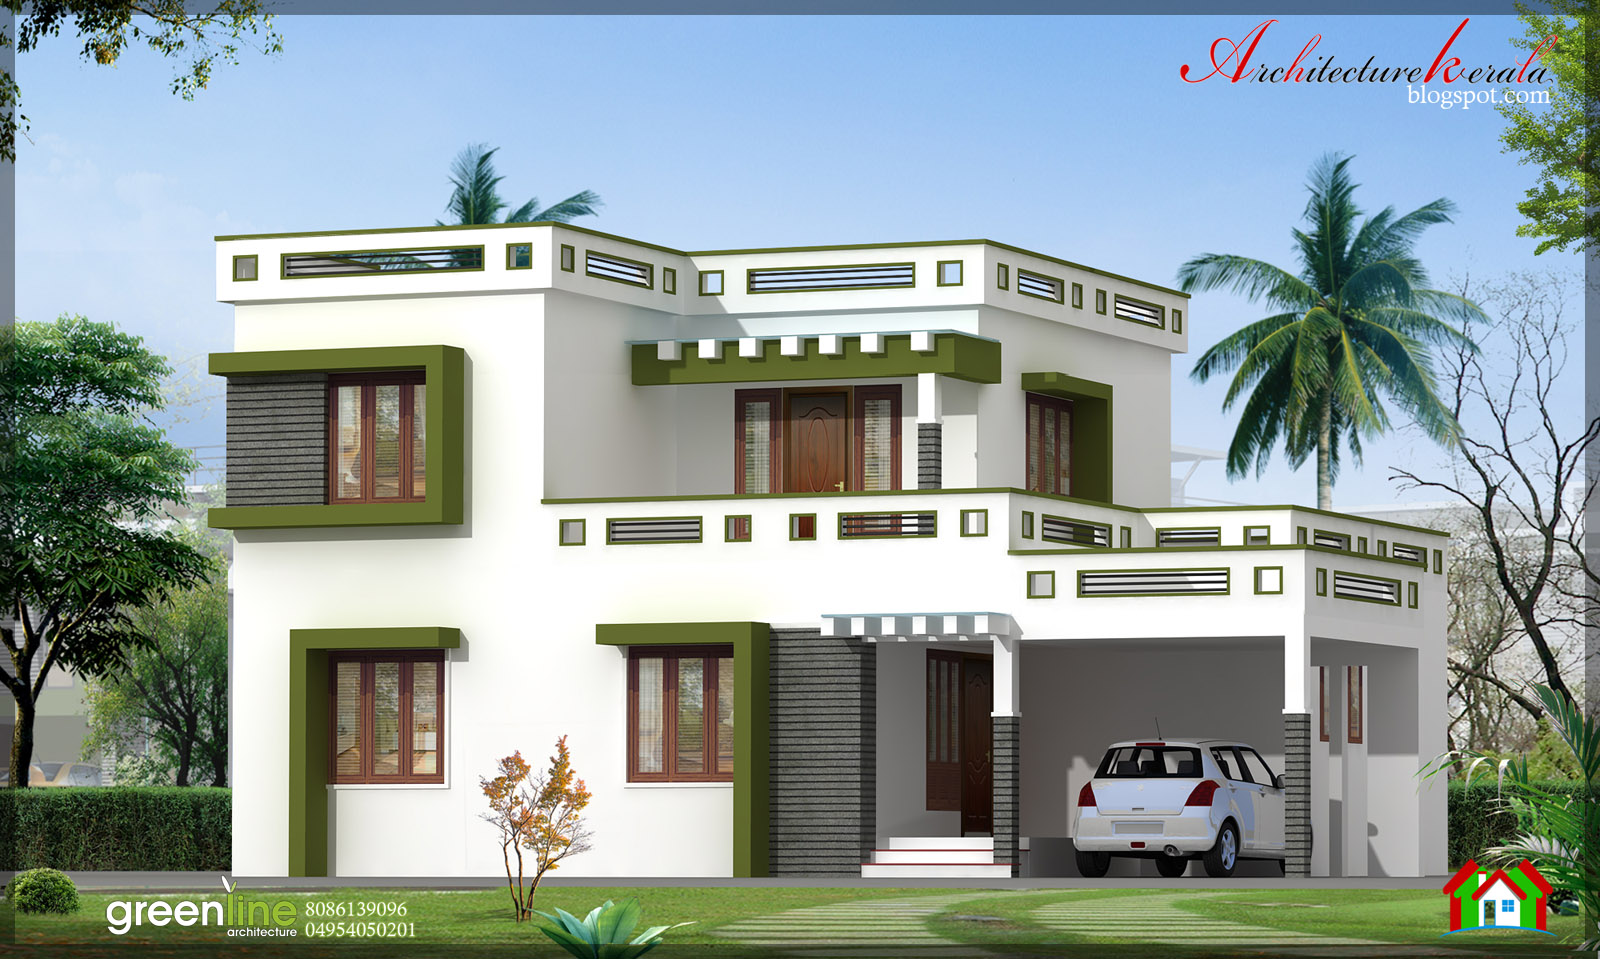 Architecture kerala 3 bhk new modern style kerala home design in 1700 sq ft House plans and designs